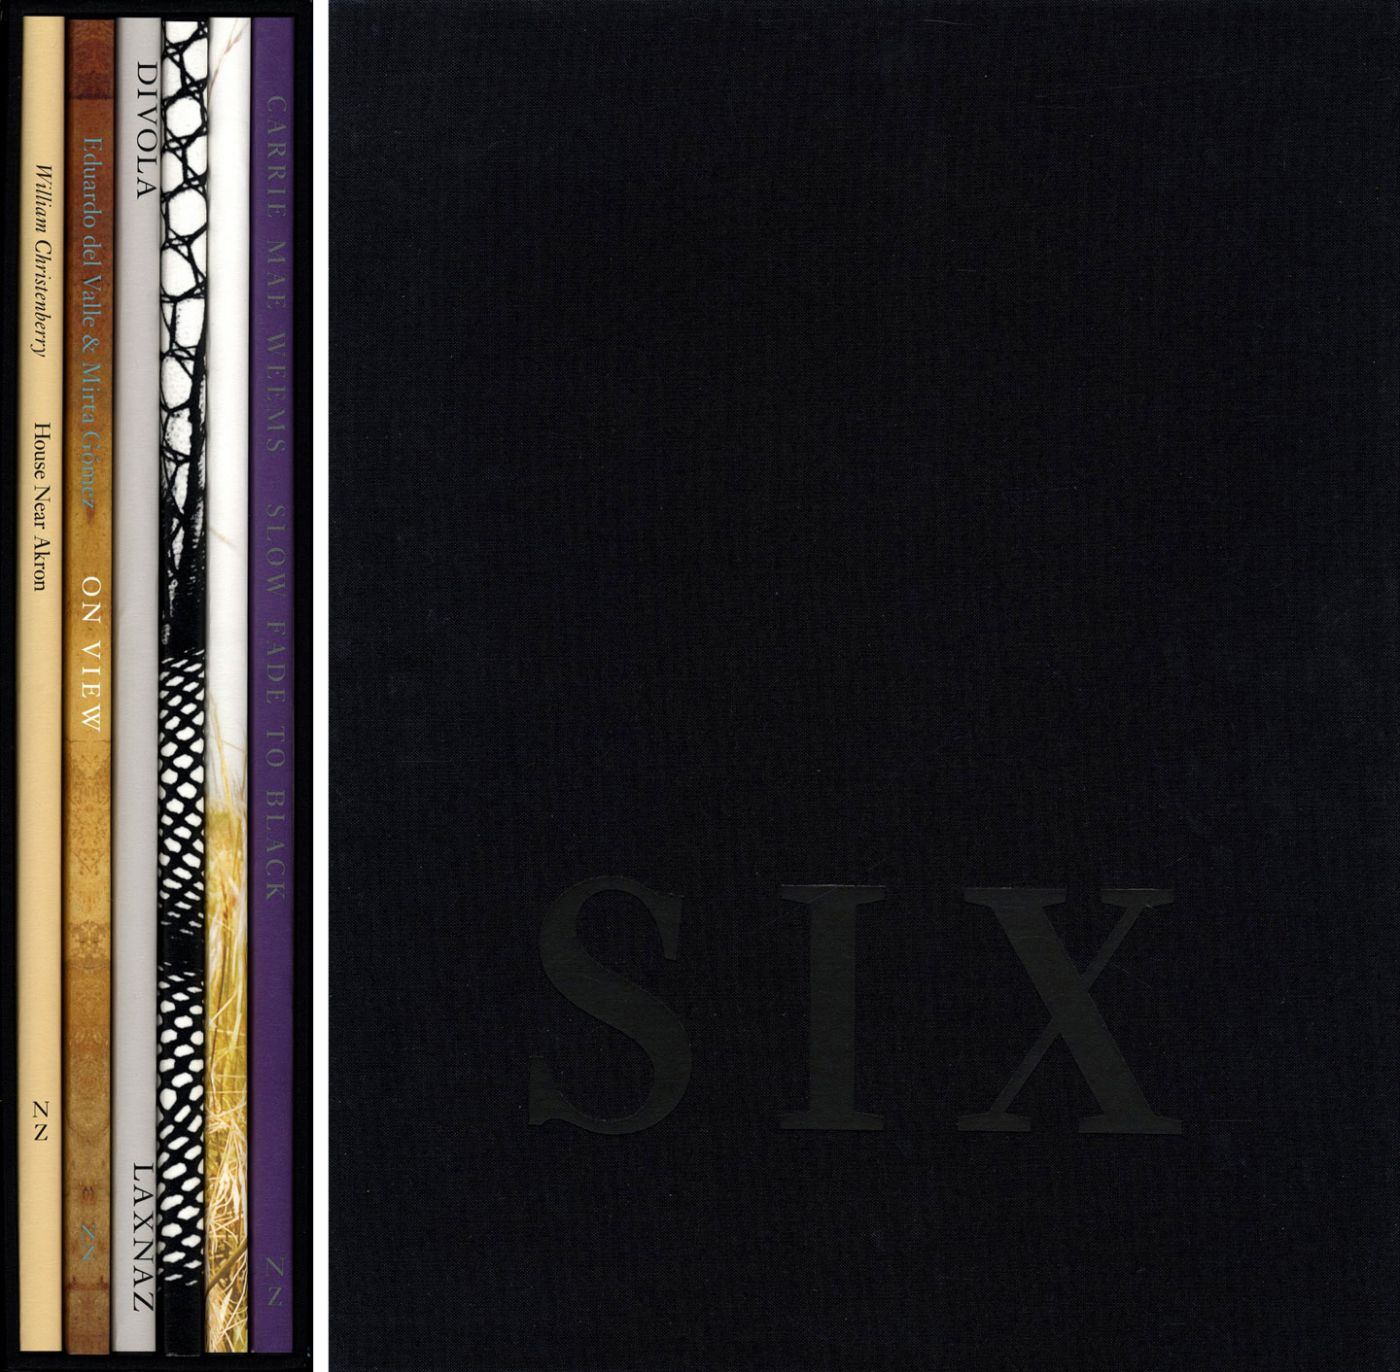 Nazraeli Press Six by Six (6 x 6) Subscription Series: Set 3 (of 6), Limited Edition (with 6 Prints): William Christenberry: House Near Akron; Eduardo del Valle & Mirta Gómez: On View; John Divola: LAX NAZ: Los Angeles International Airport Noise Abatement Zone (Exterior Views), 1975; Daido Moriyama: Fishnet; Karin Apollonia Müller: Timber Cove; Carrie Mae Weems: Slow Fade to Black